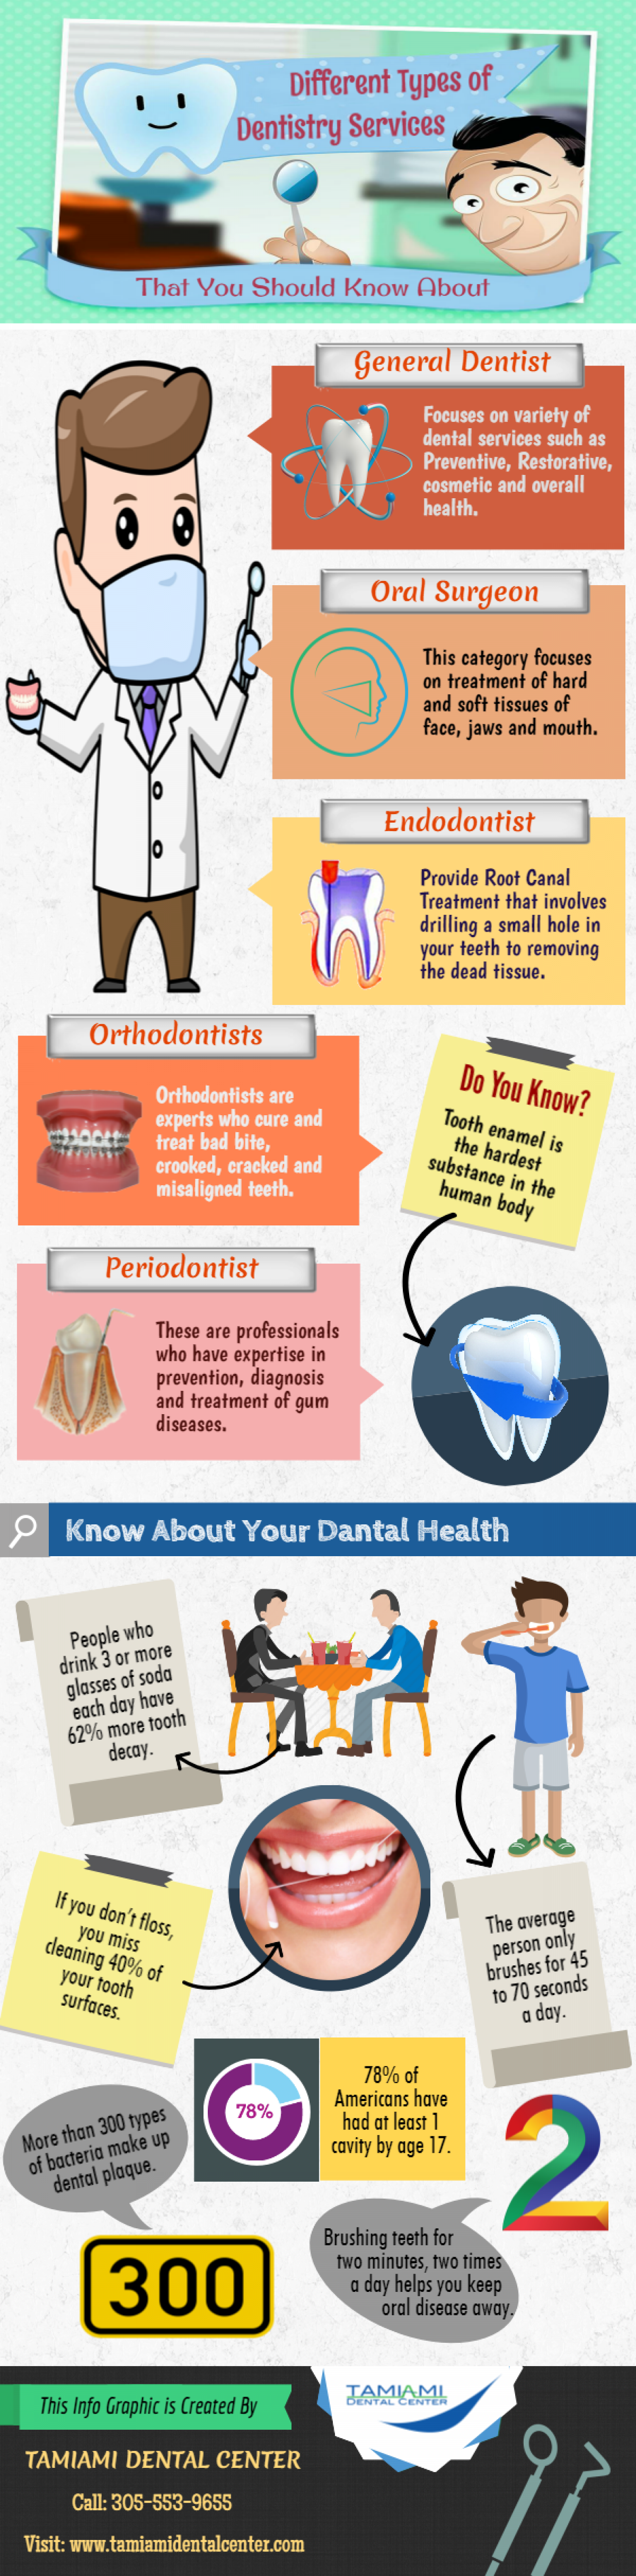 Best Dental Hospital in Miami Infographic